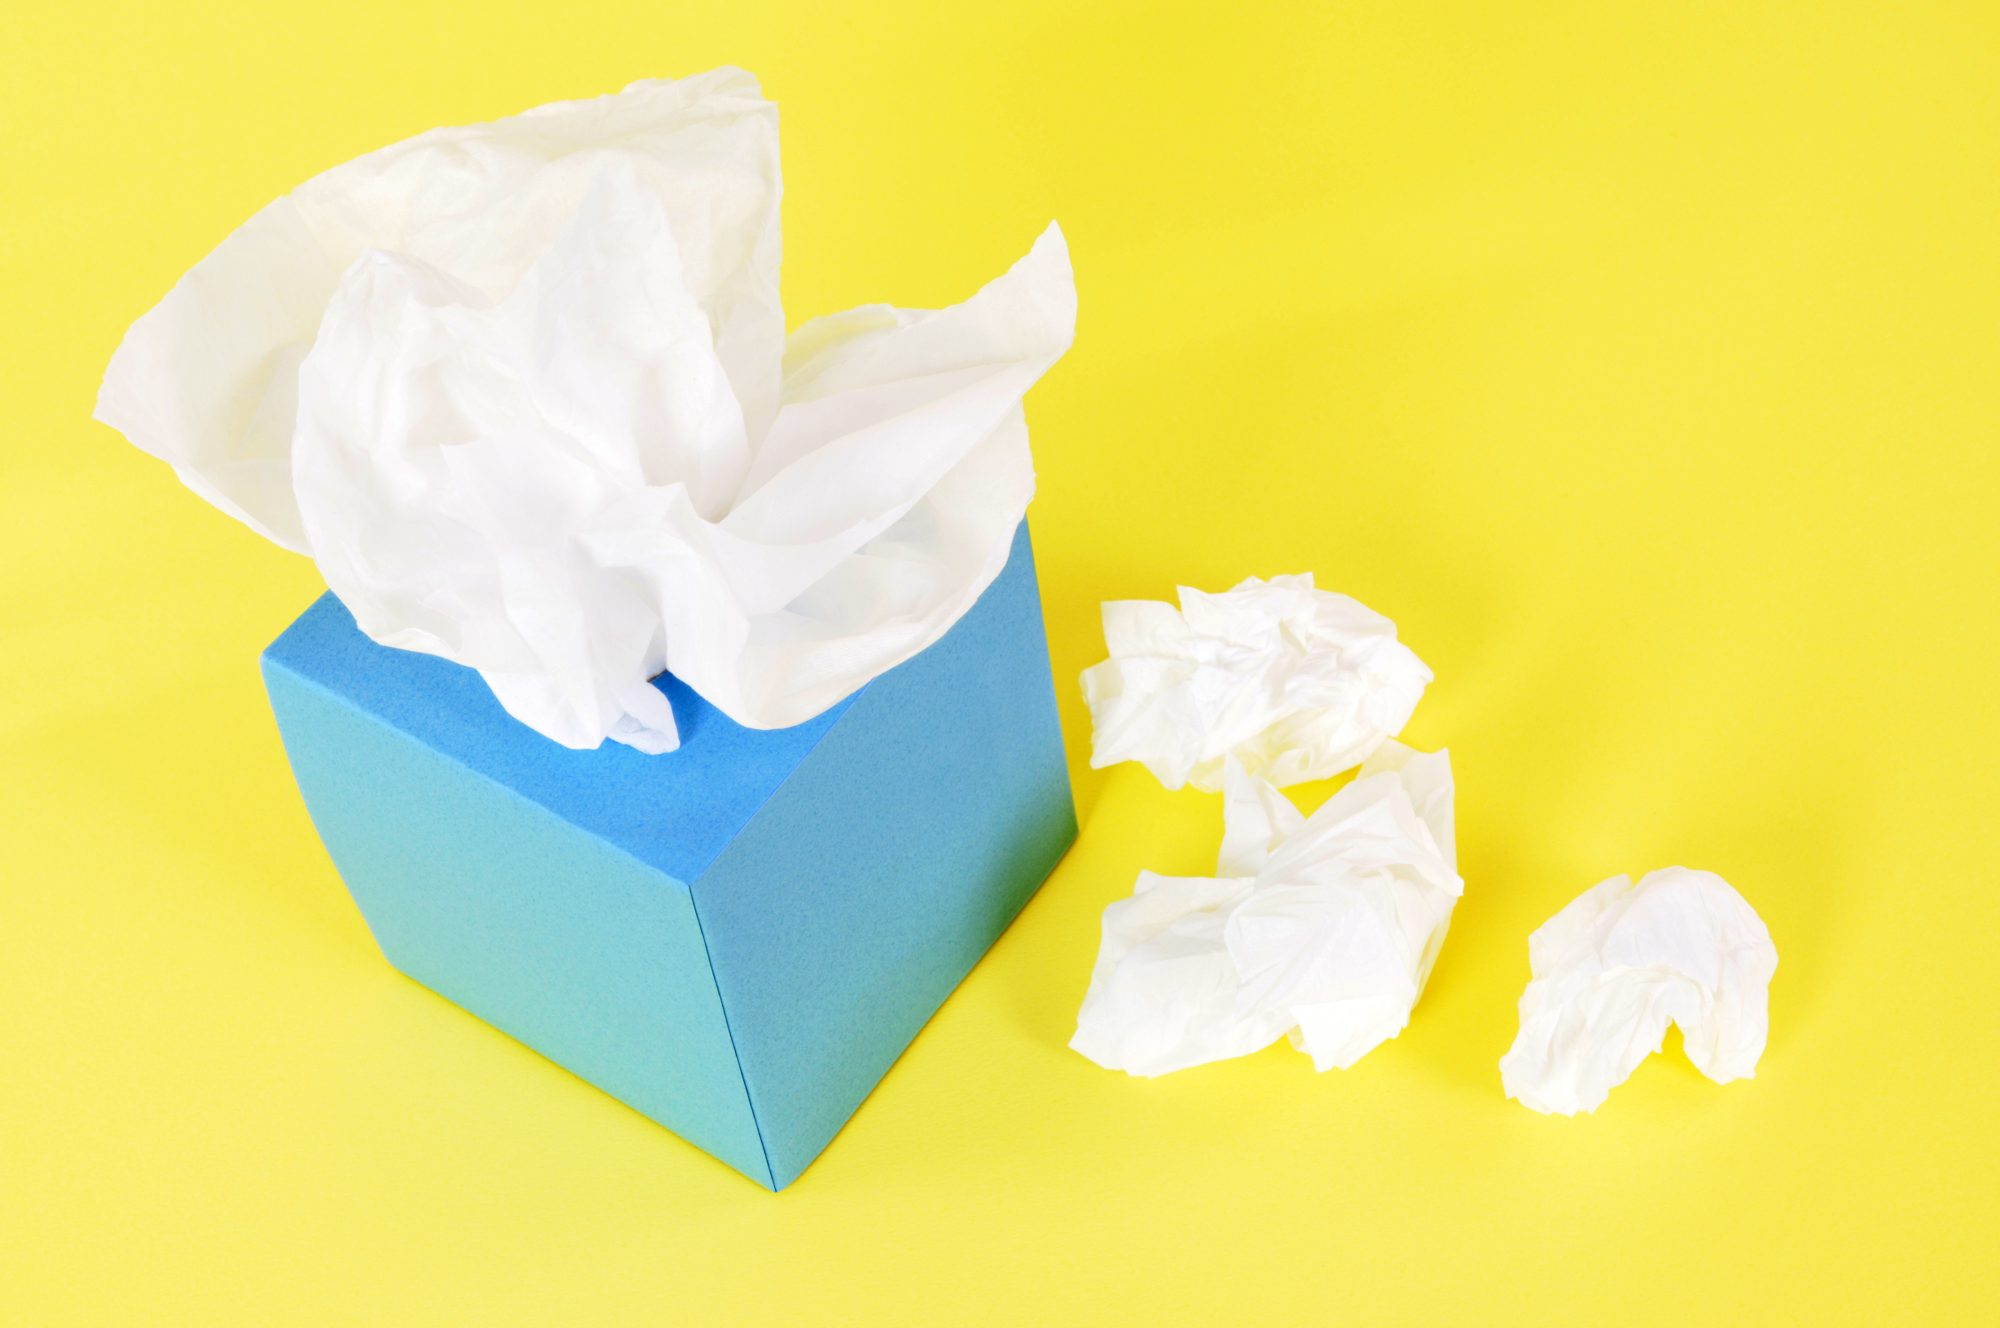 Blue tissue box with crumpled tissues beside it